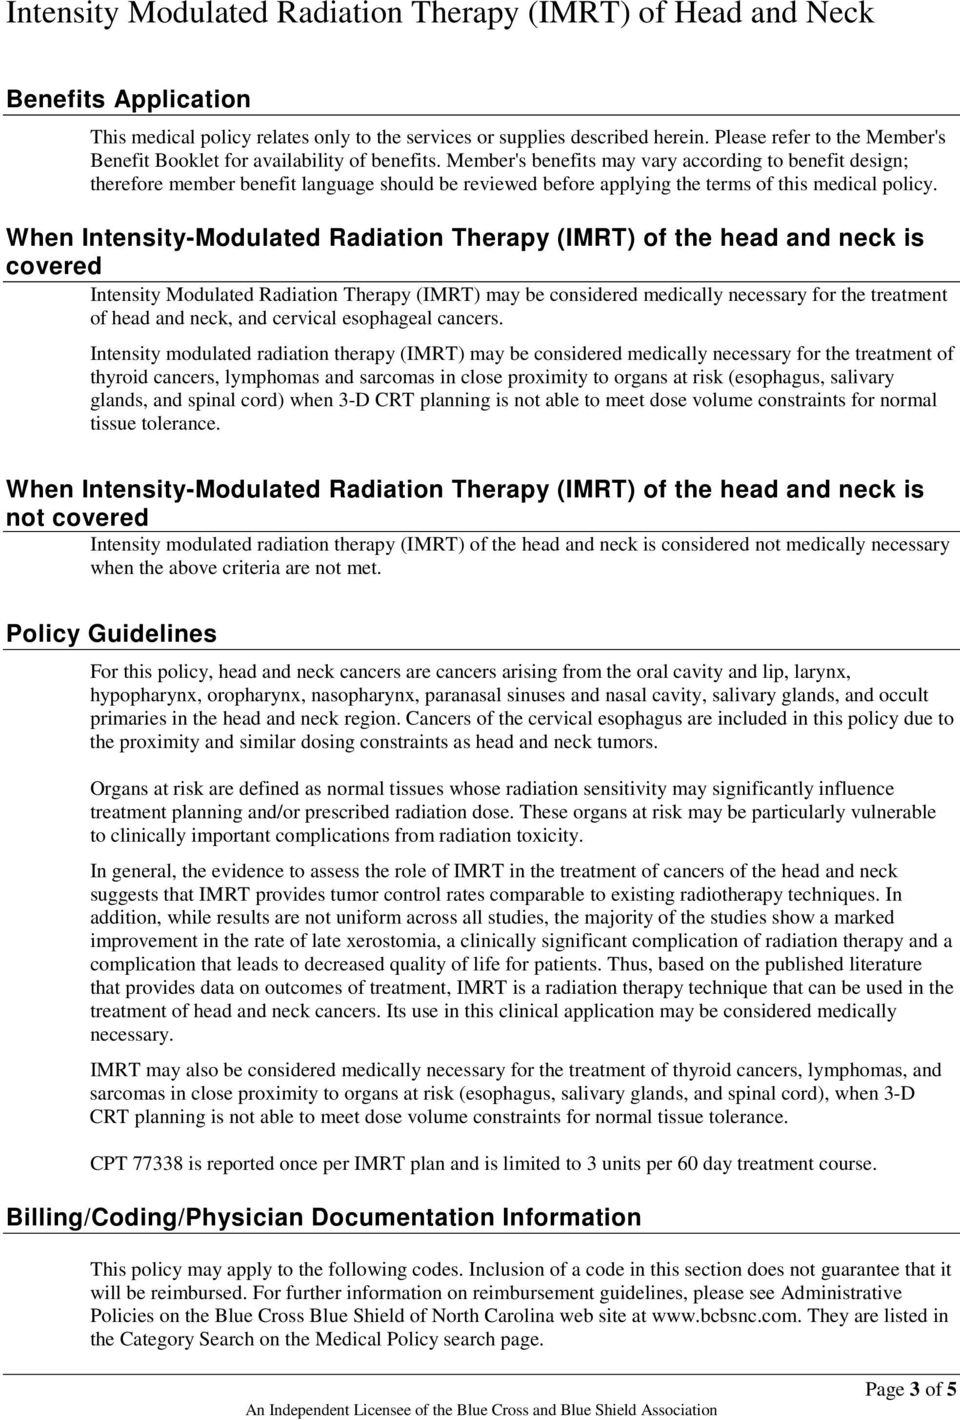 When Intensity-Modulated Radiation Therapy (IMRT) of the head and neck is covered Intensity Modulated Radiation Therapy (IMRT) may be considered medically necessary for the treatment of head and